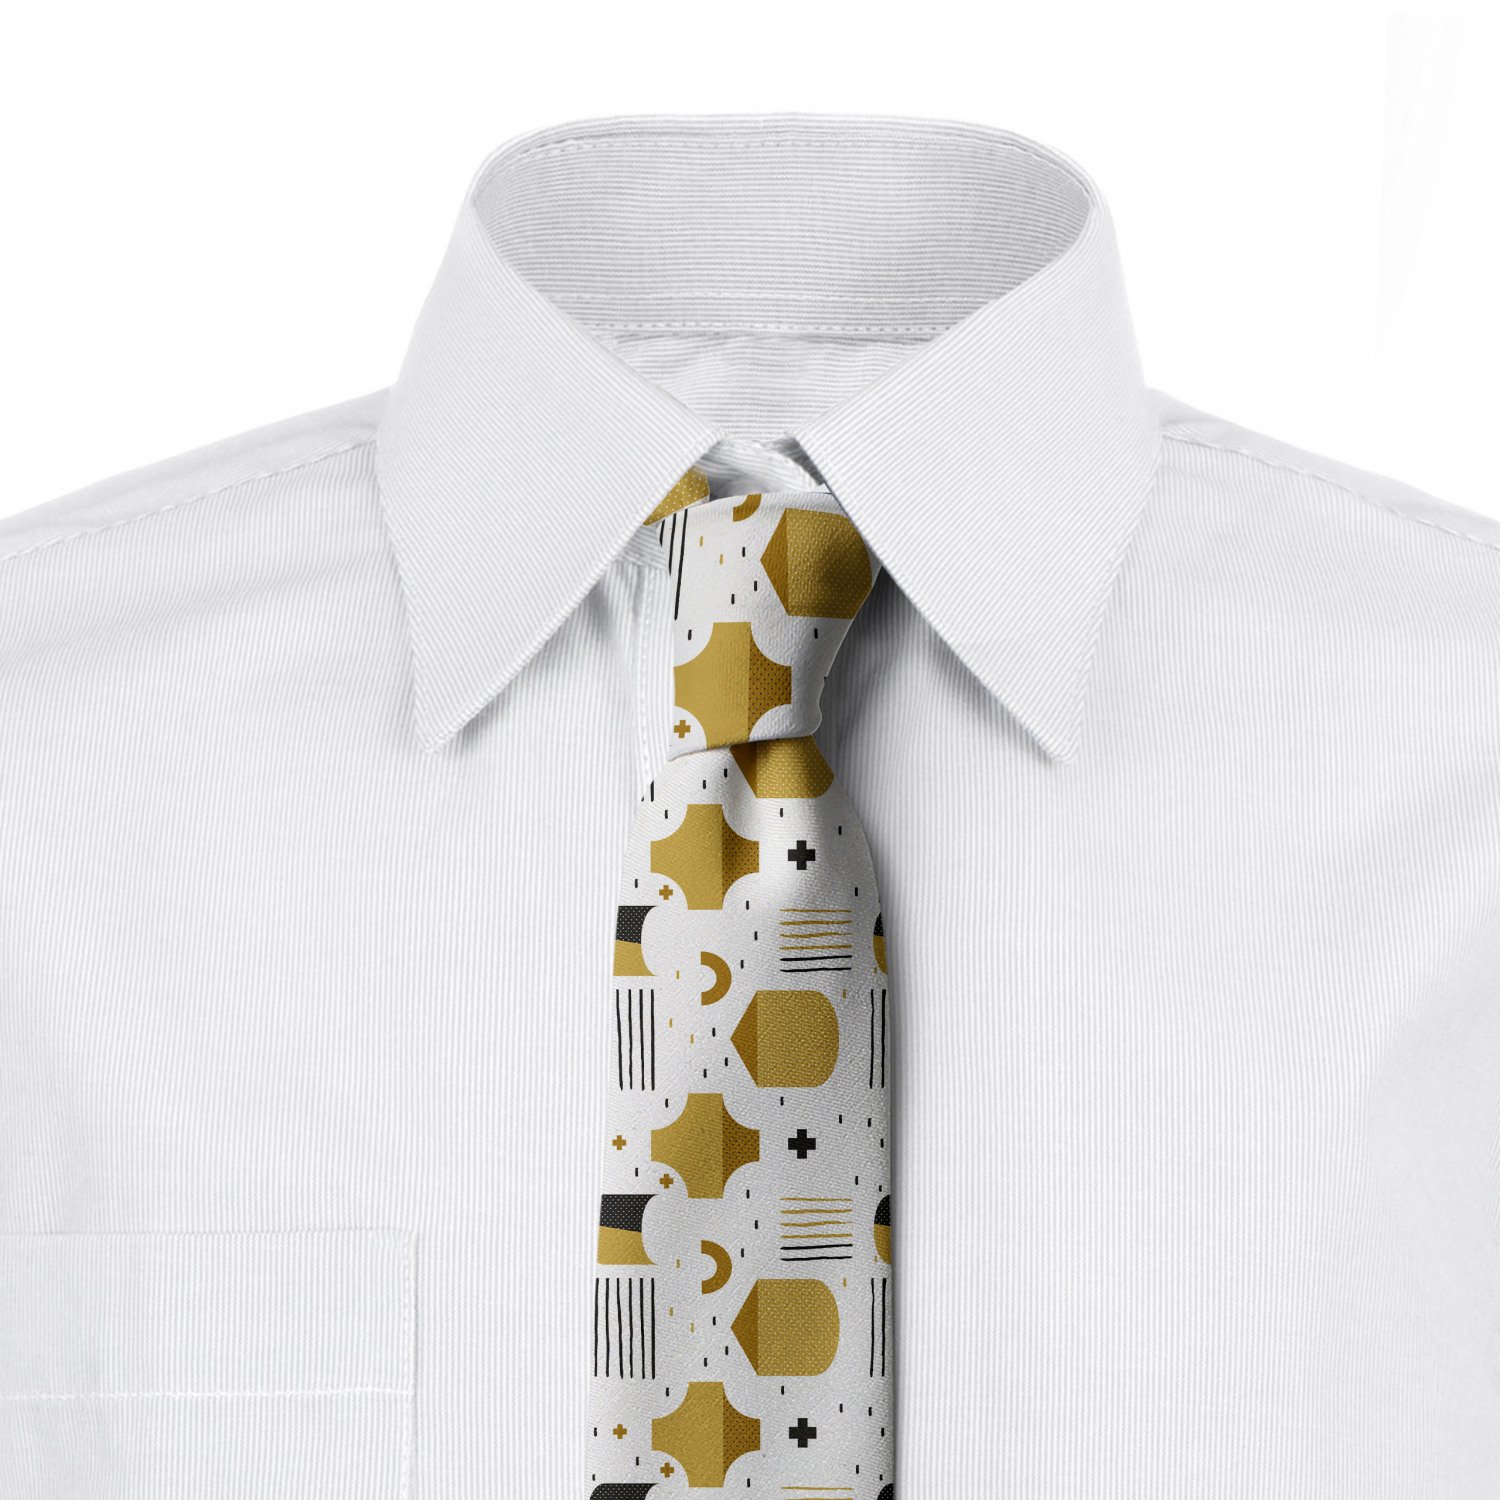 3.7 Charcoal Grey and White Monochrome Little Flowers Ambesonne Necktie